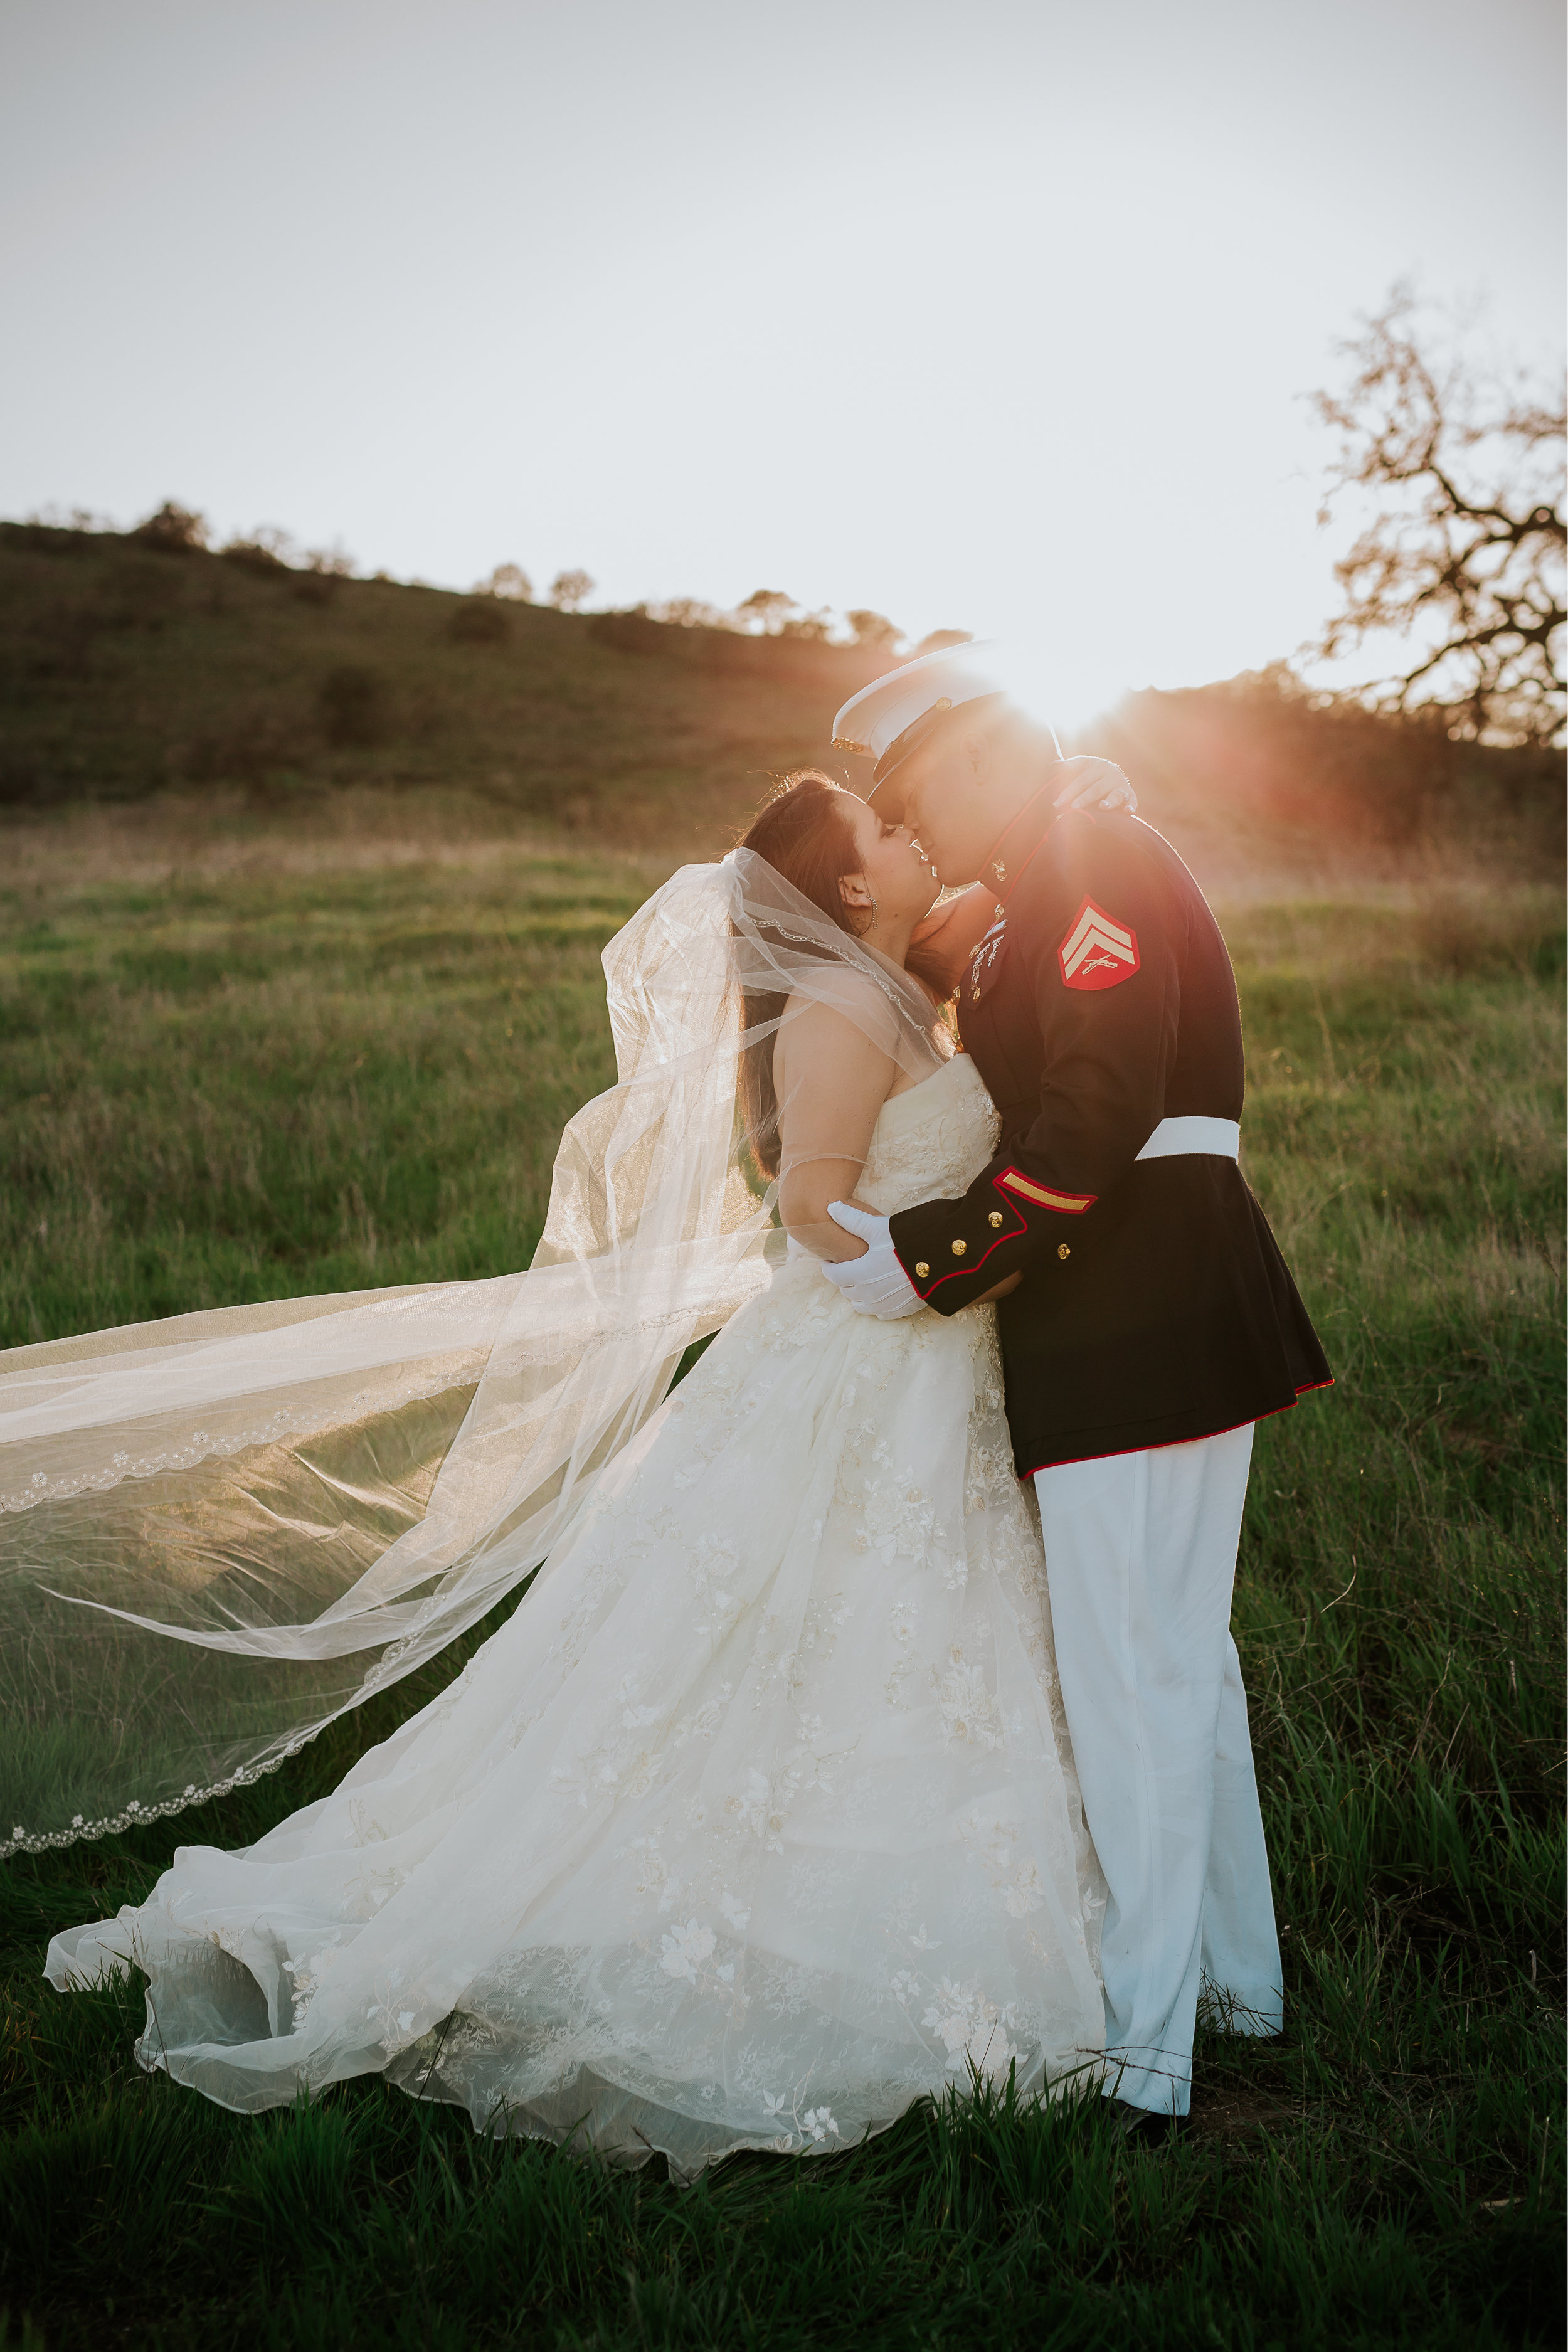 eve rox photography los angeles wedding photographer -102.jpg